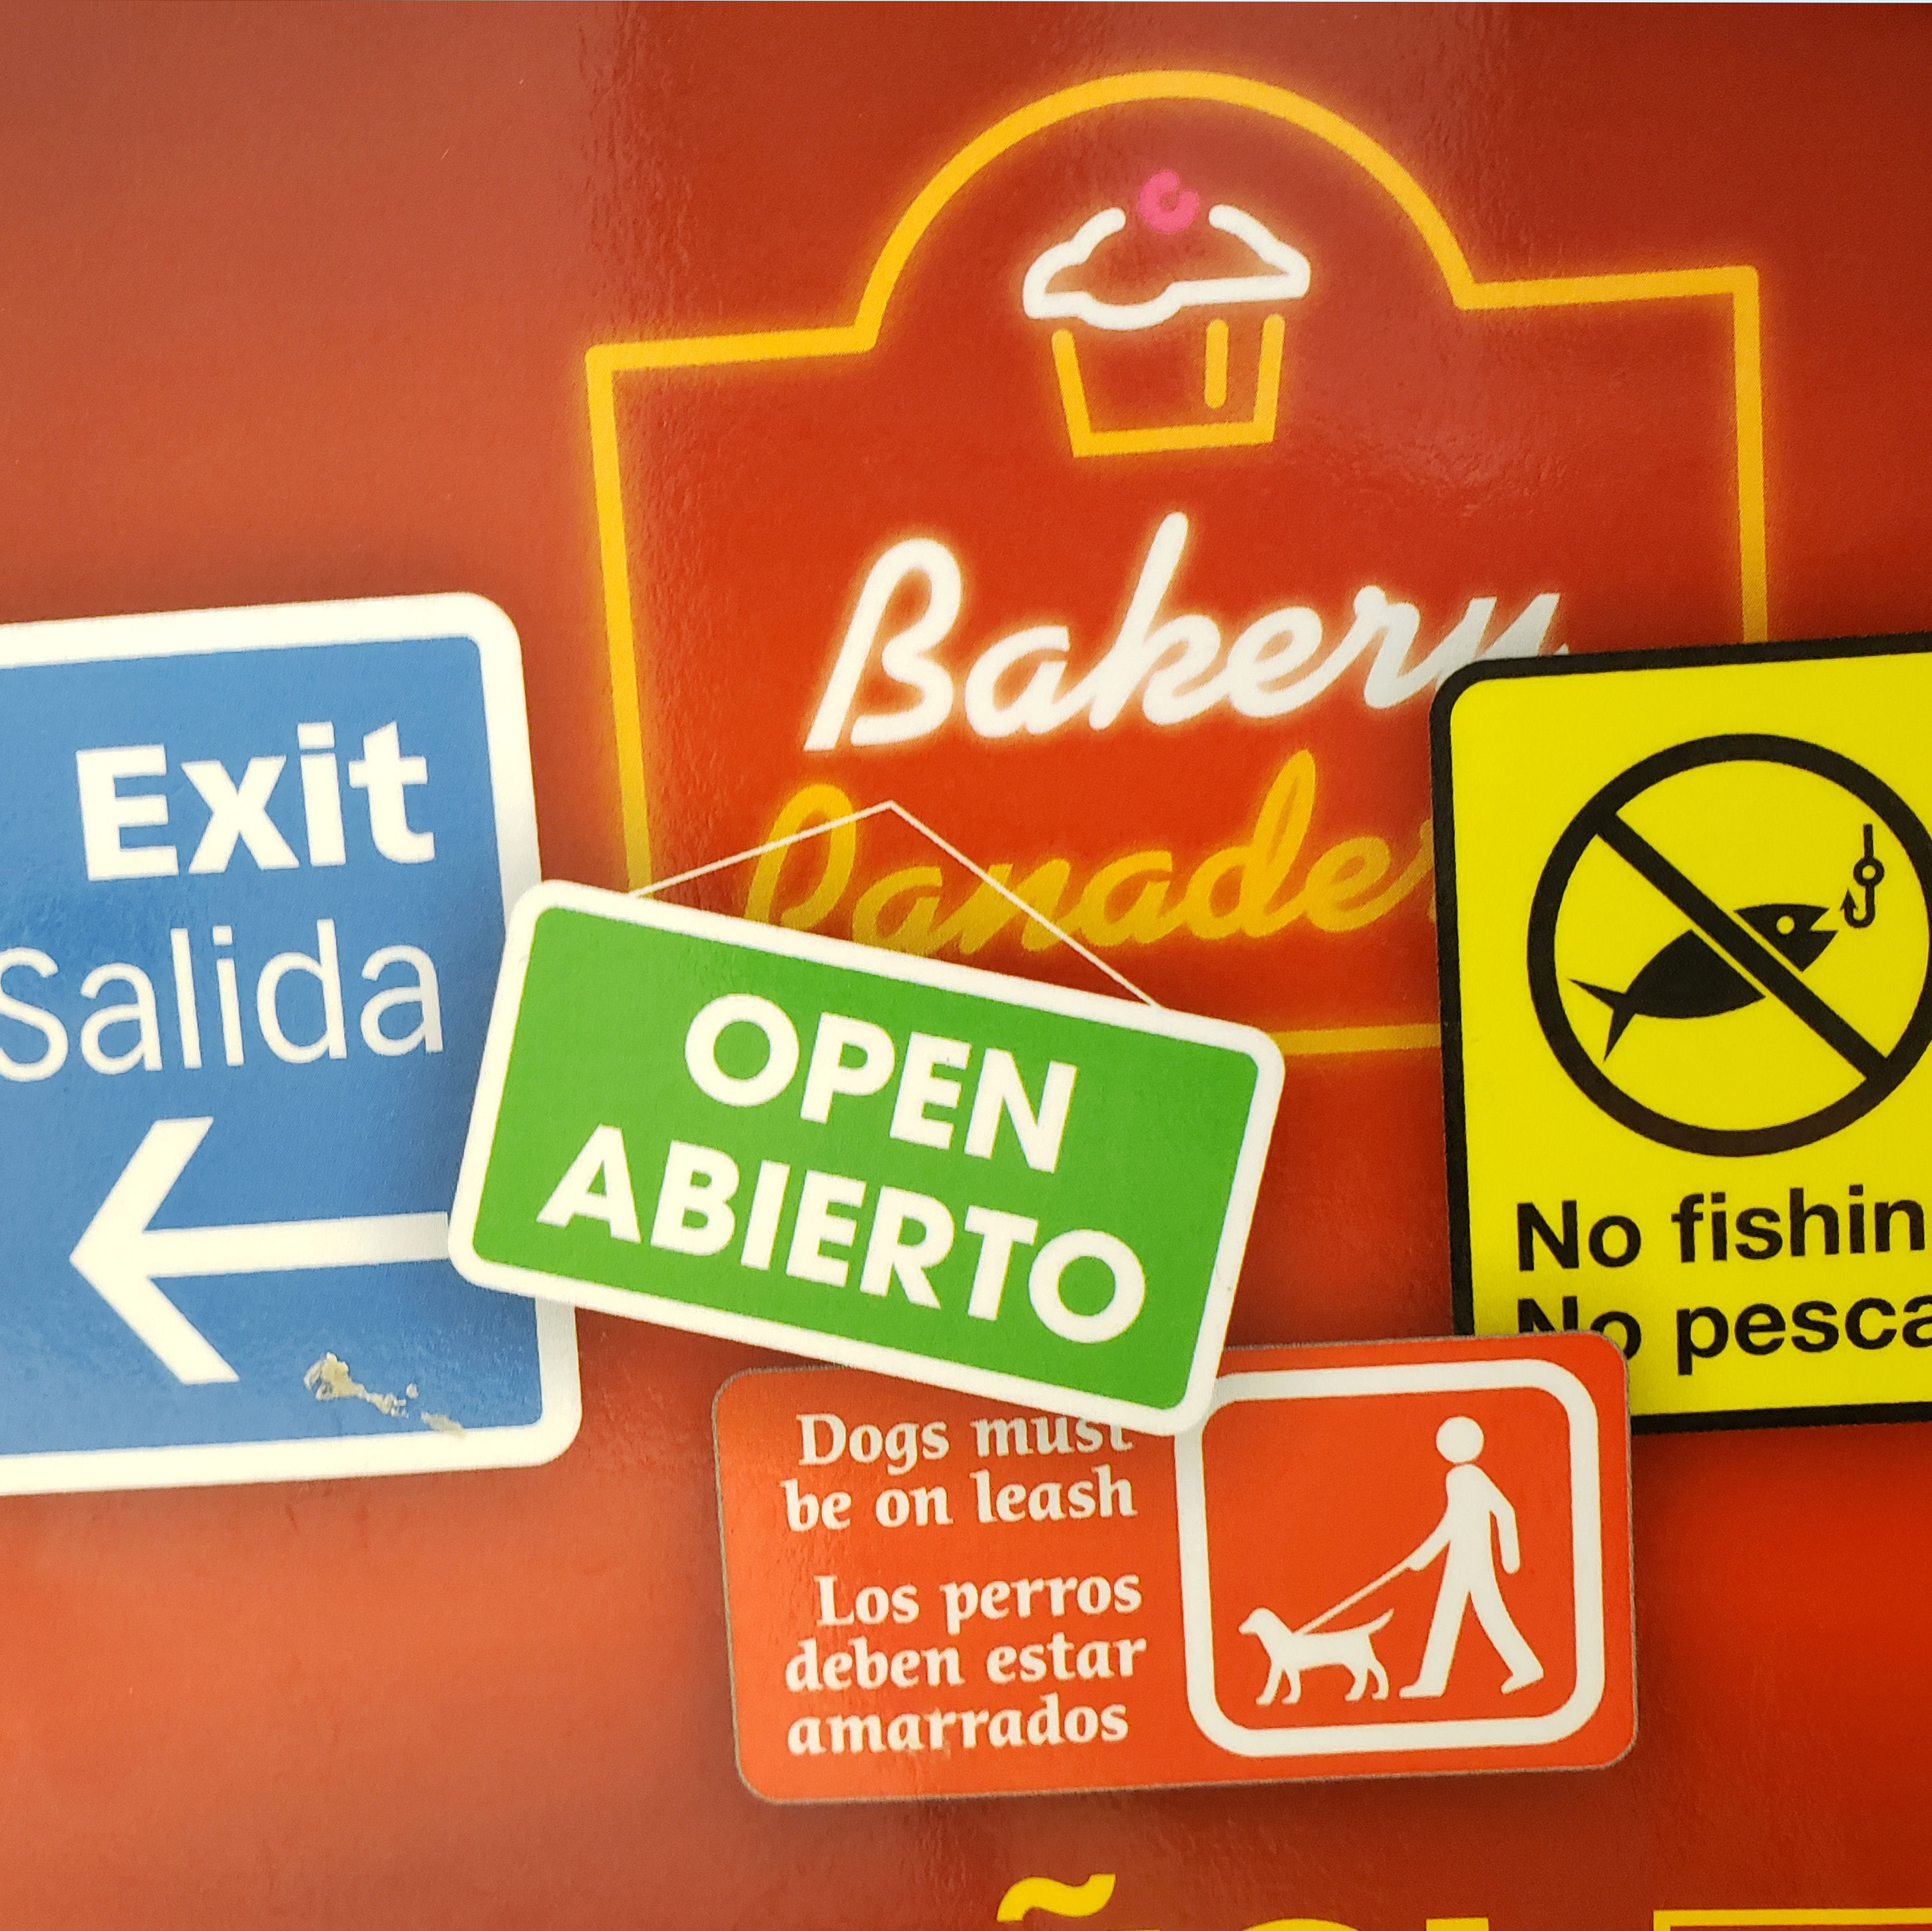 Various signs in Spanish